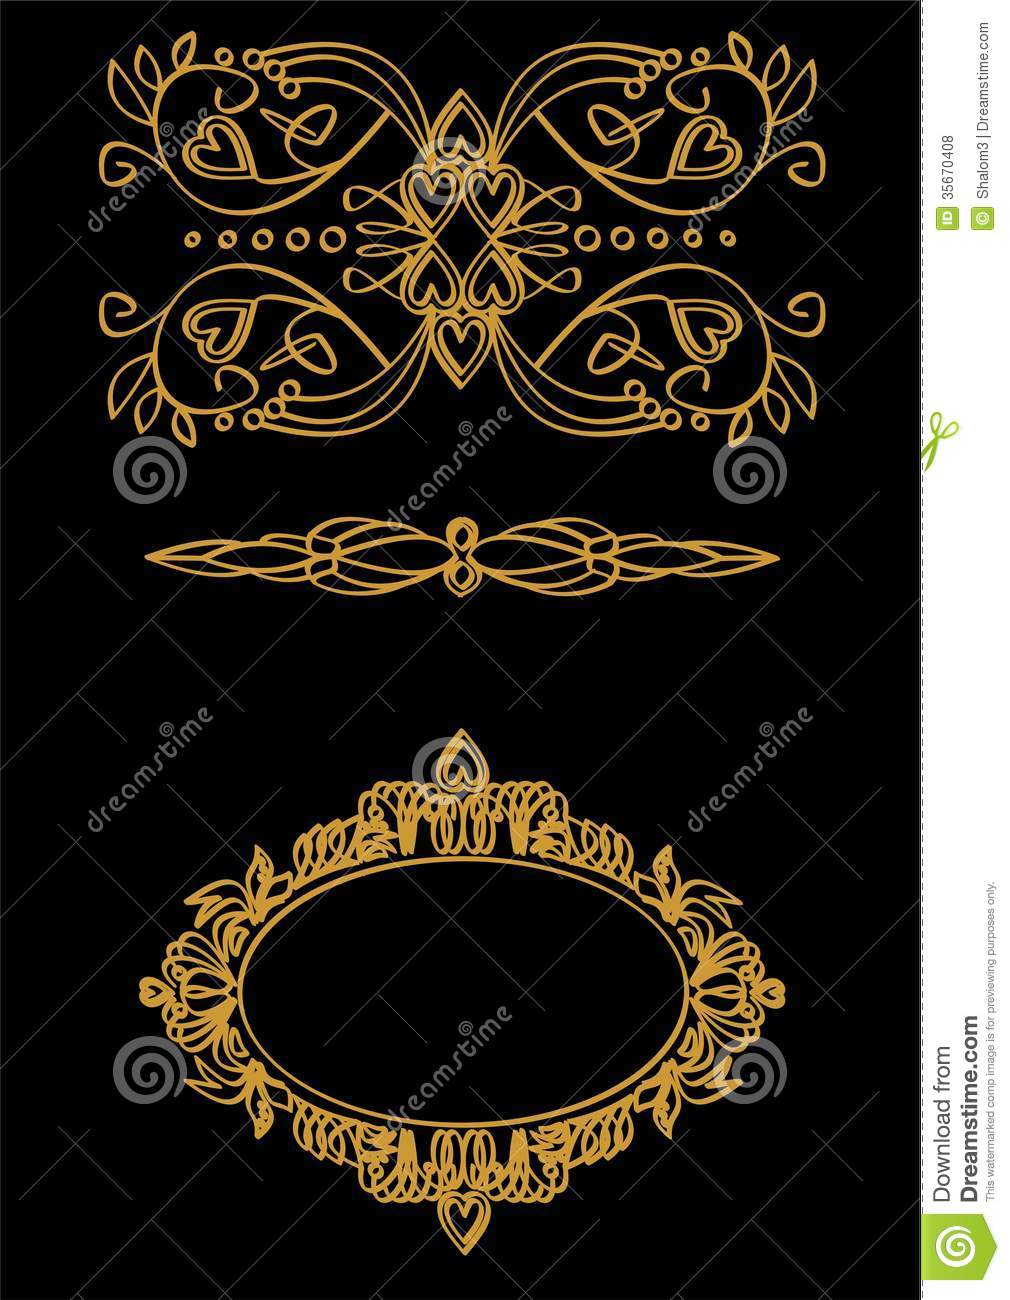 gold ornament in art nouveau style stock vector image 35670408. Black Bedroom Furniture Sets. Home Design Ideas